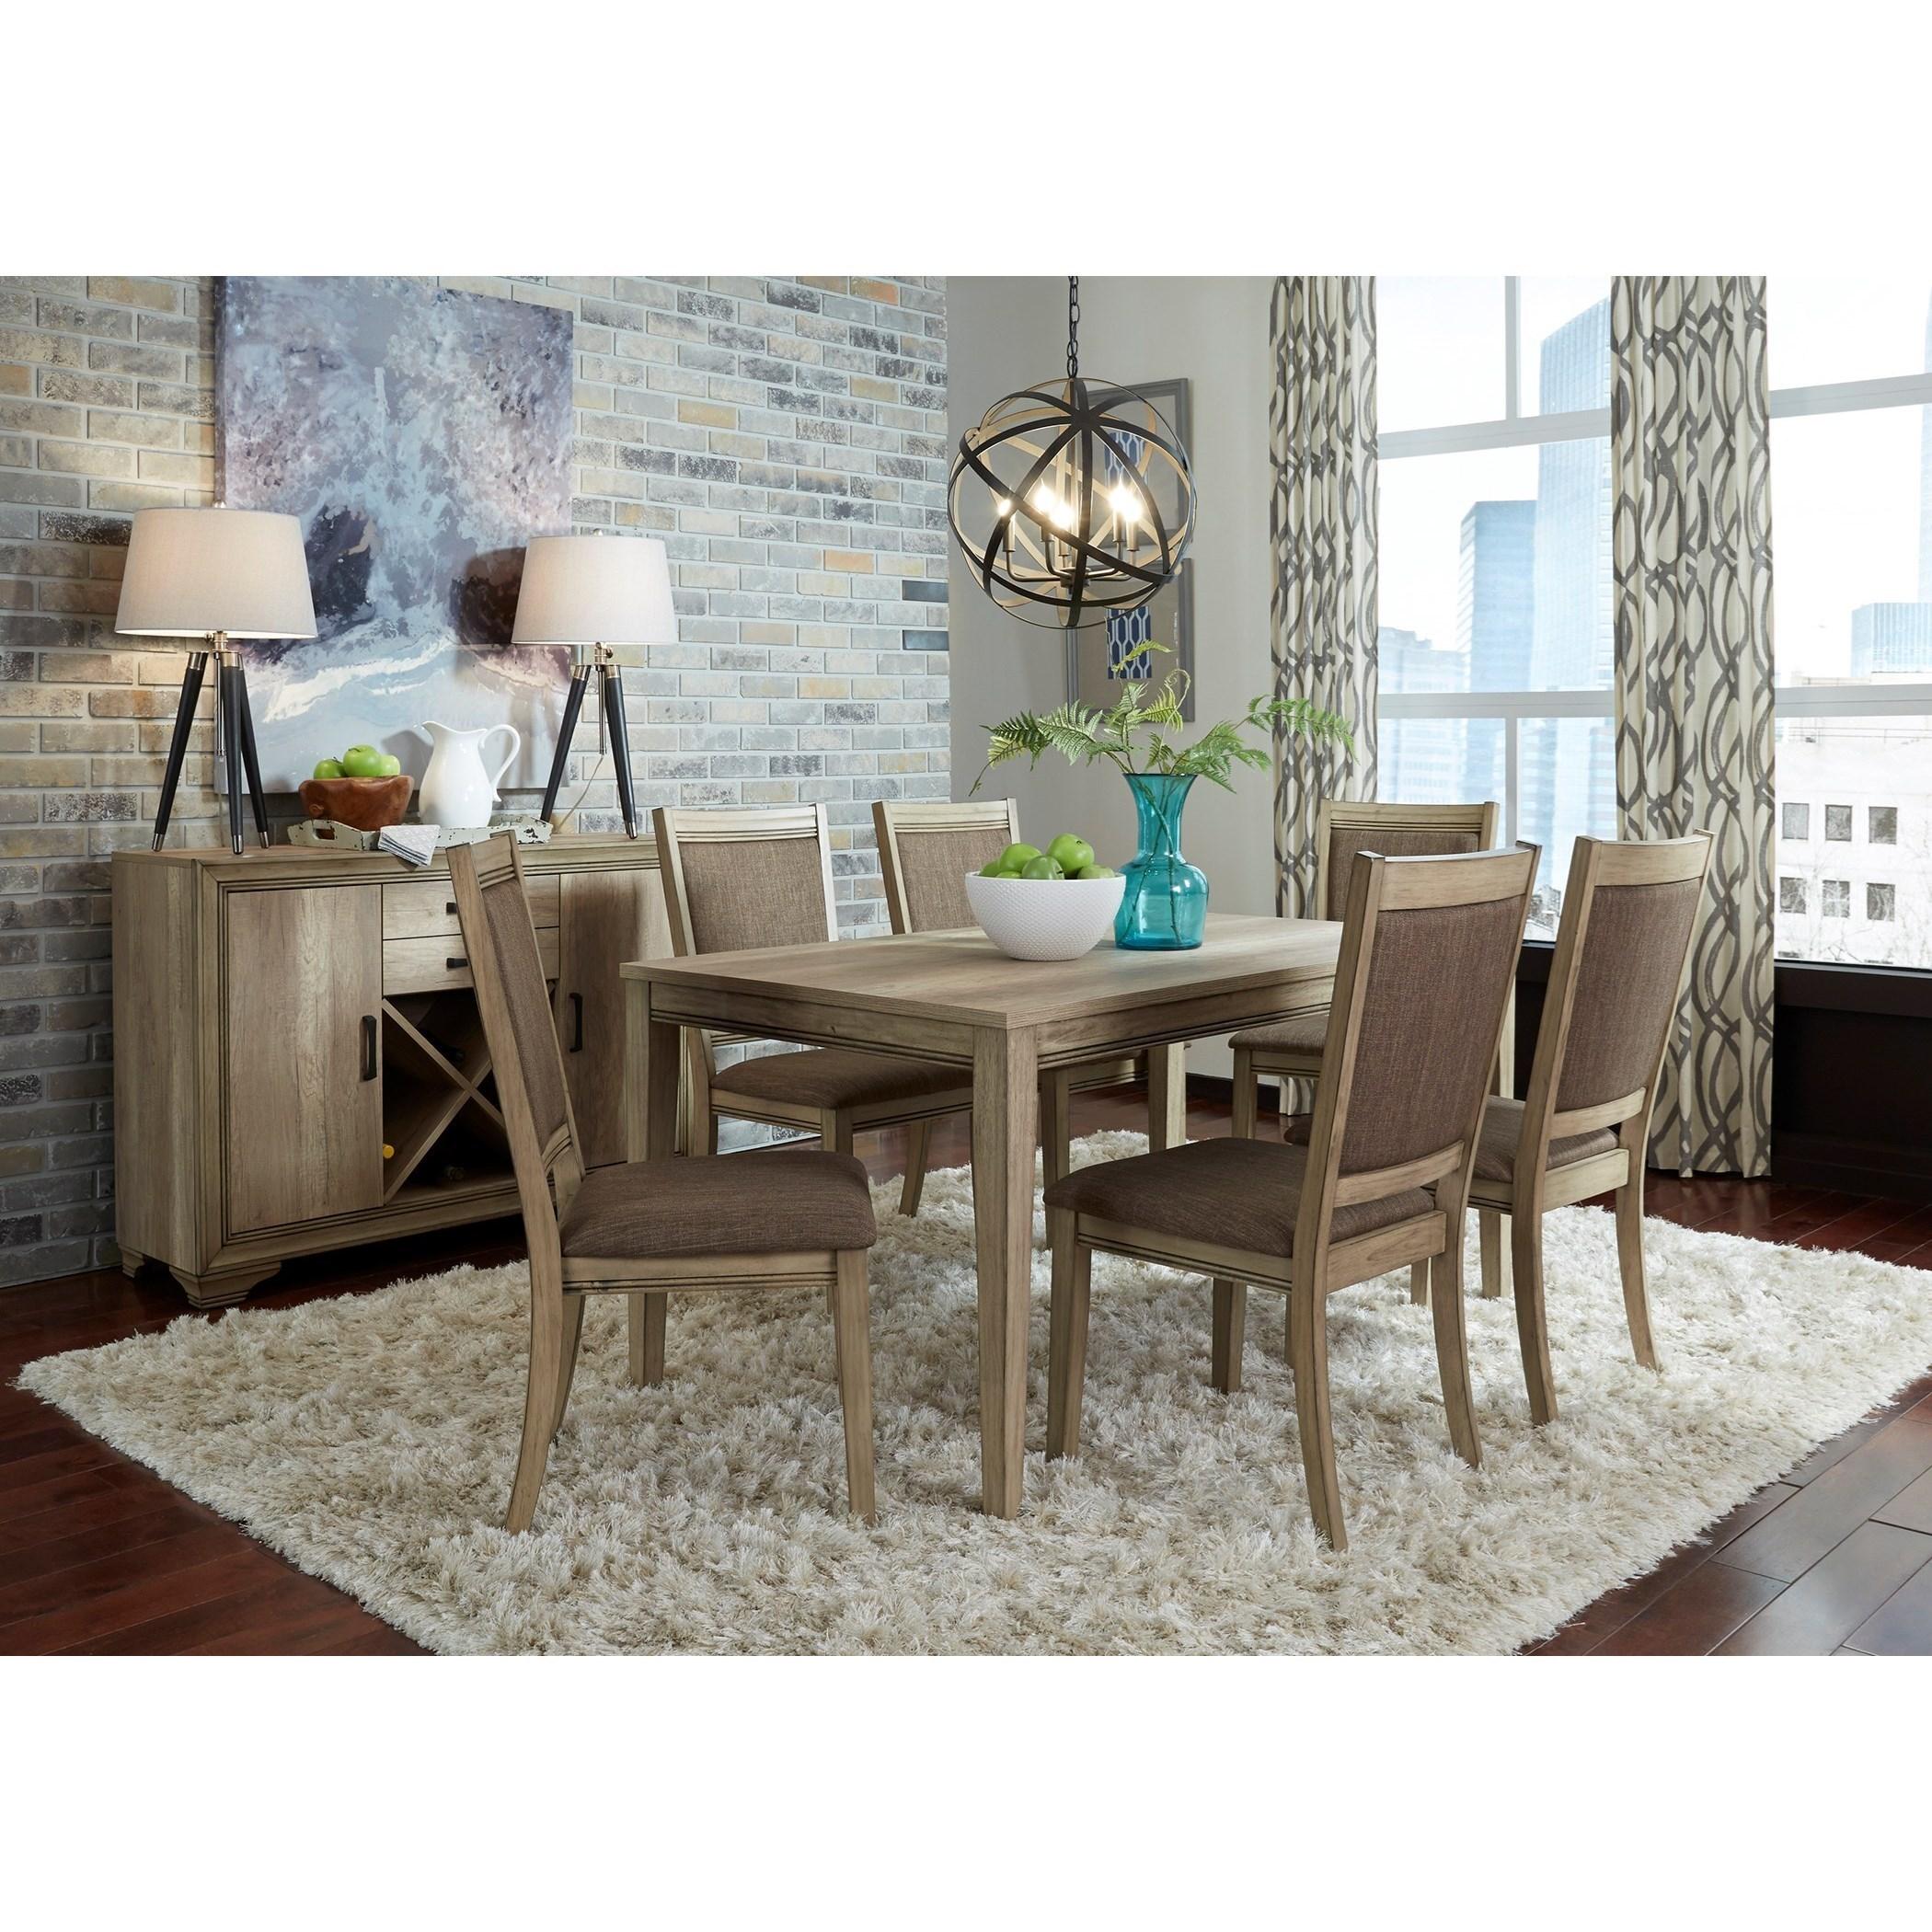 Sun Valley 439 Casual Dining Room Group By Liberty Furniture